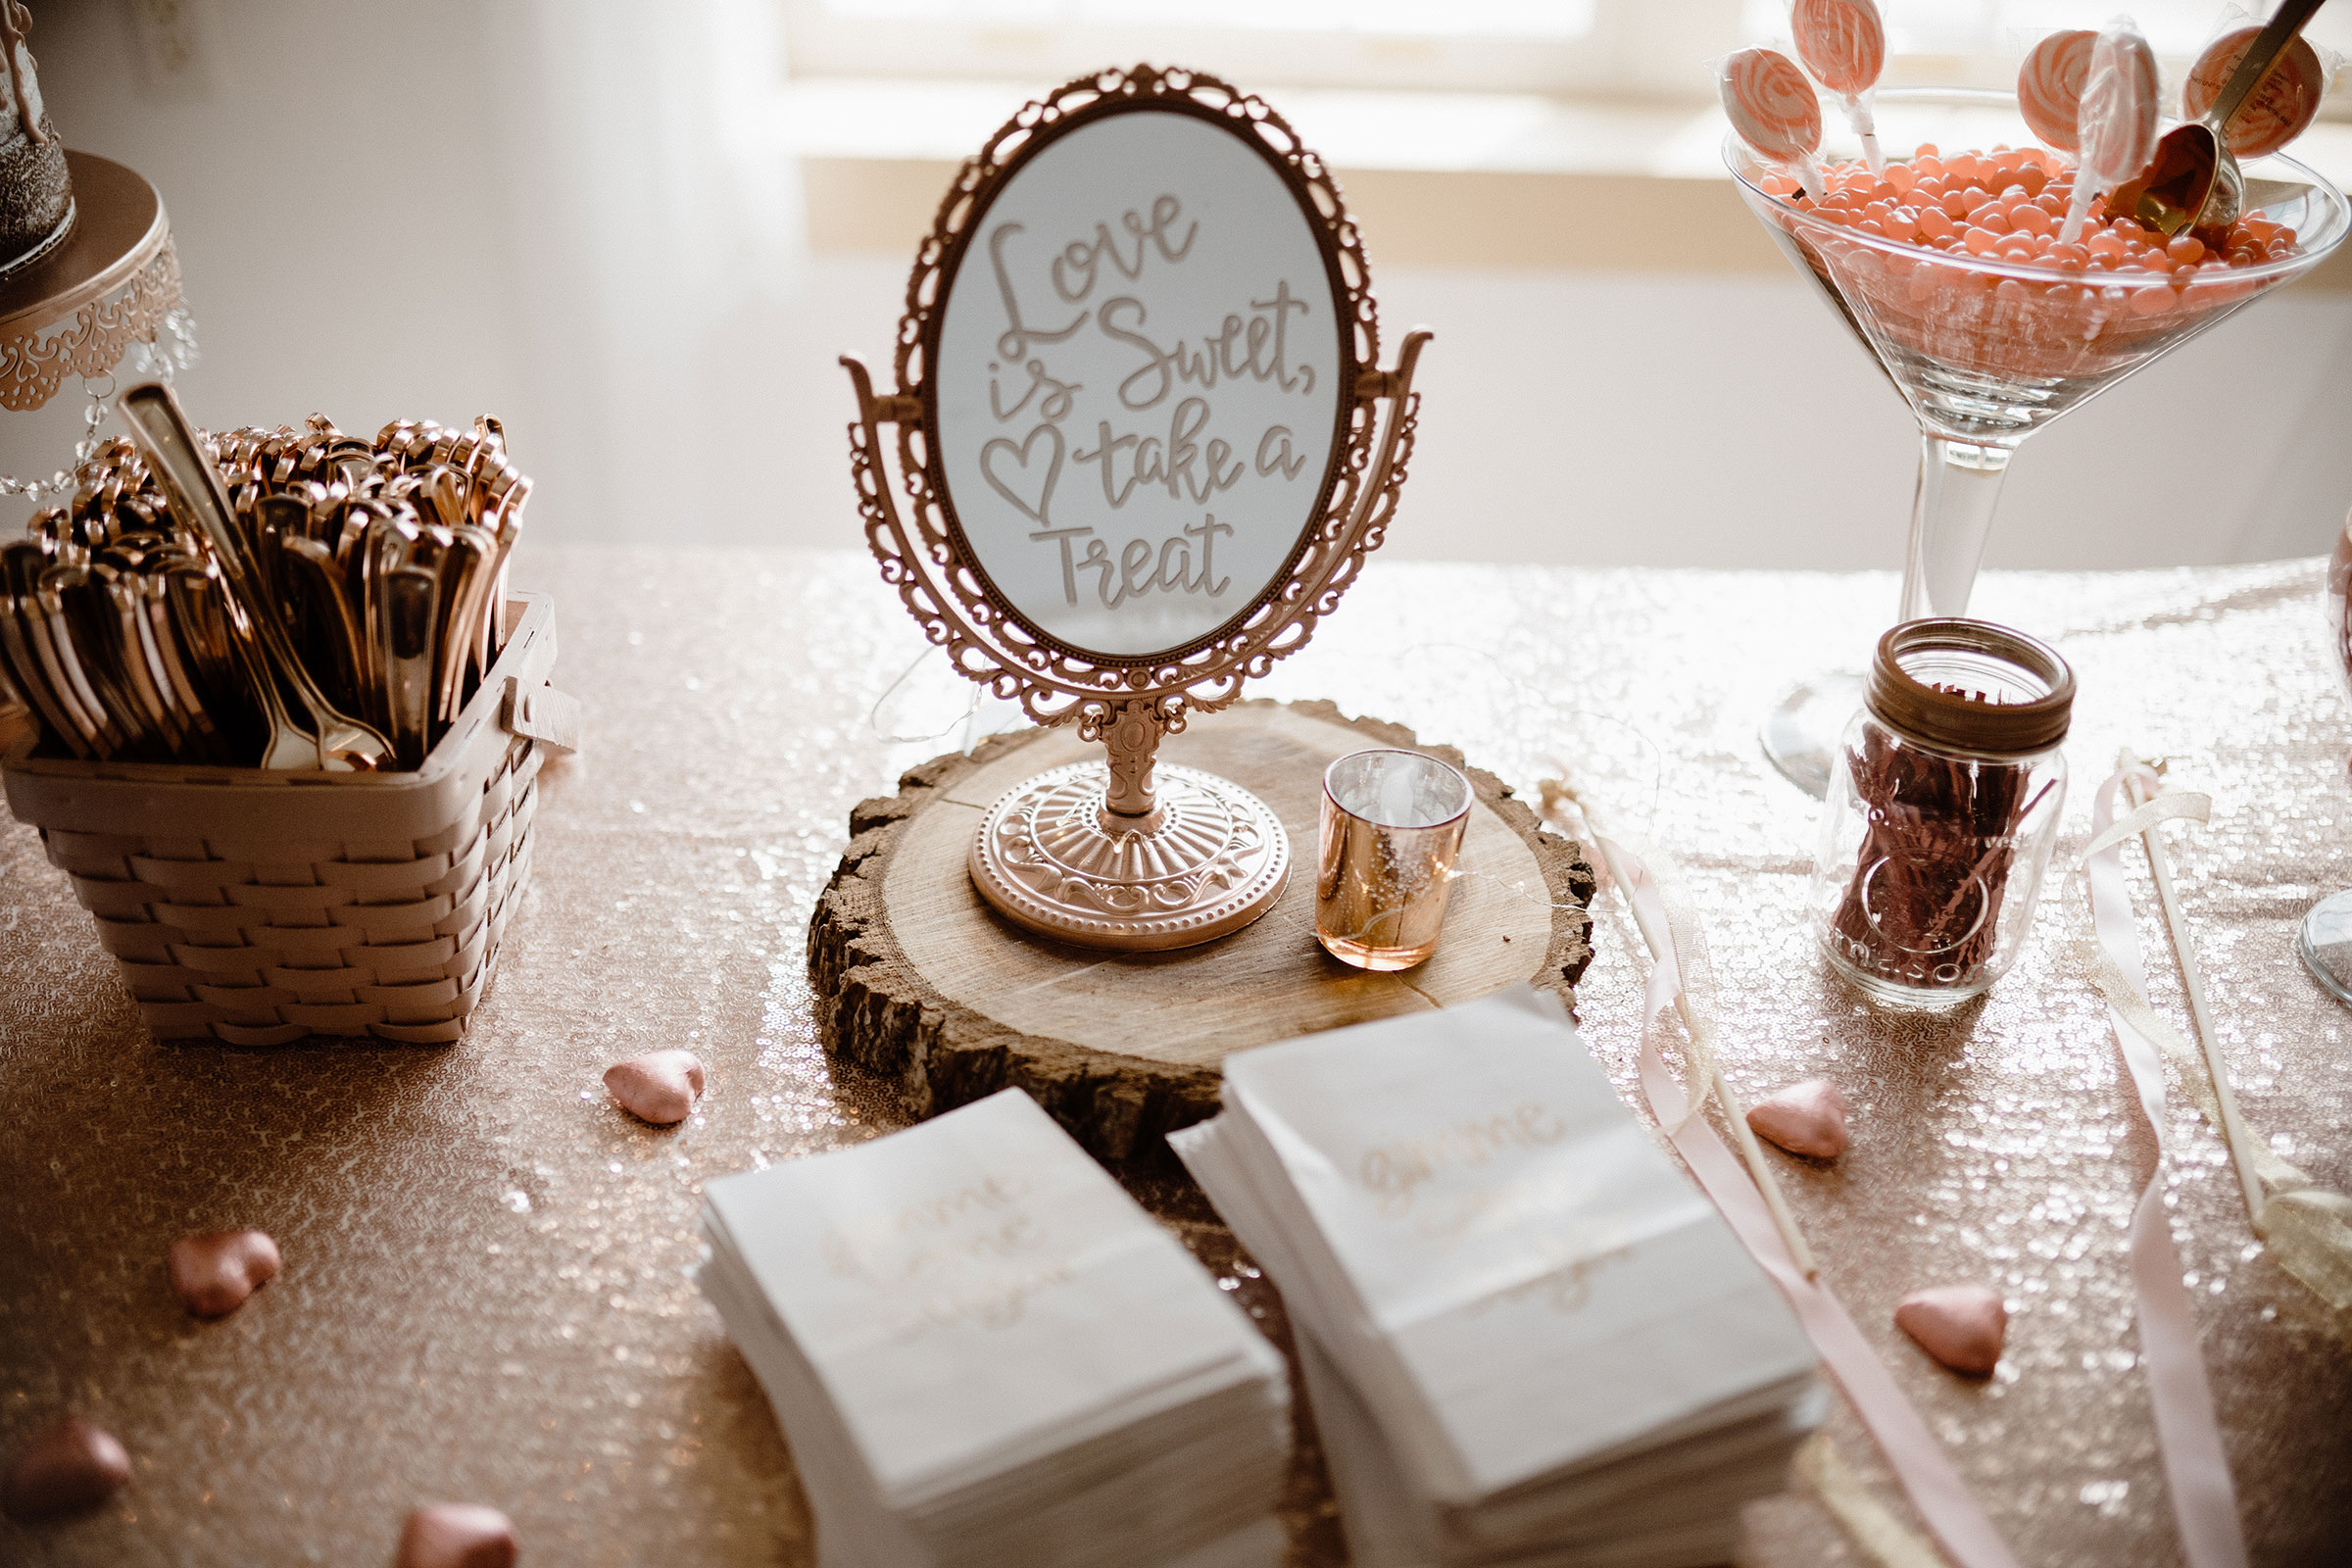 mirror-with-saying-on-candy-bar-wedding-summerset-winery-indianola-iowa-raelyn-ramey-photography.jpg